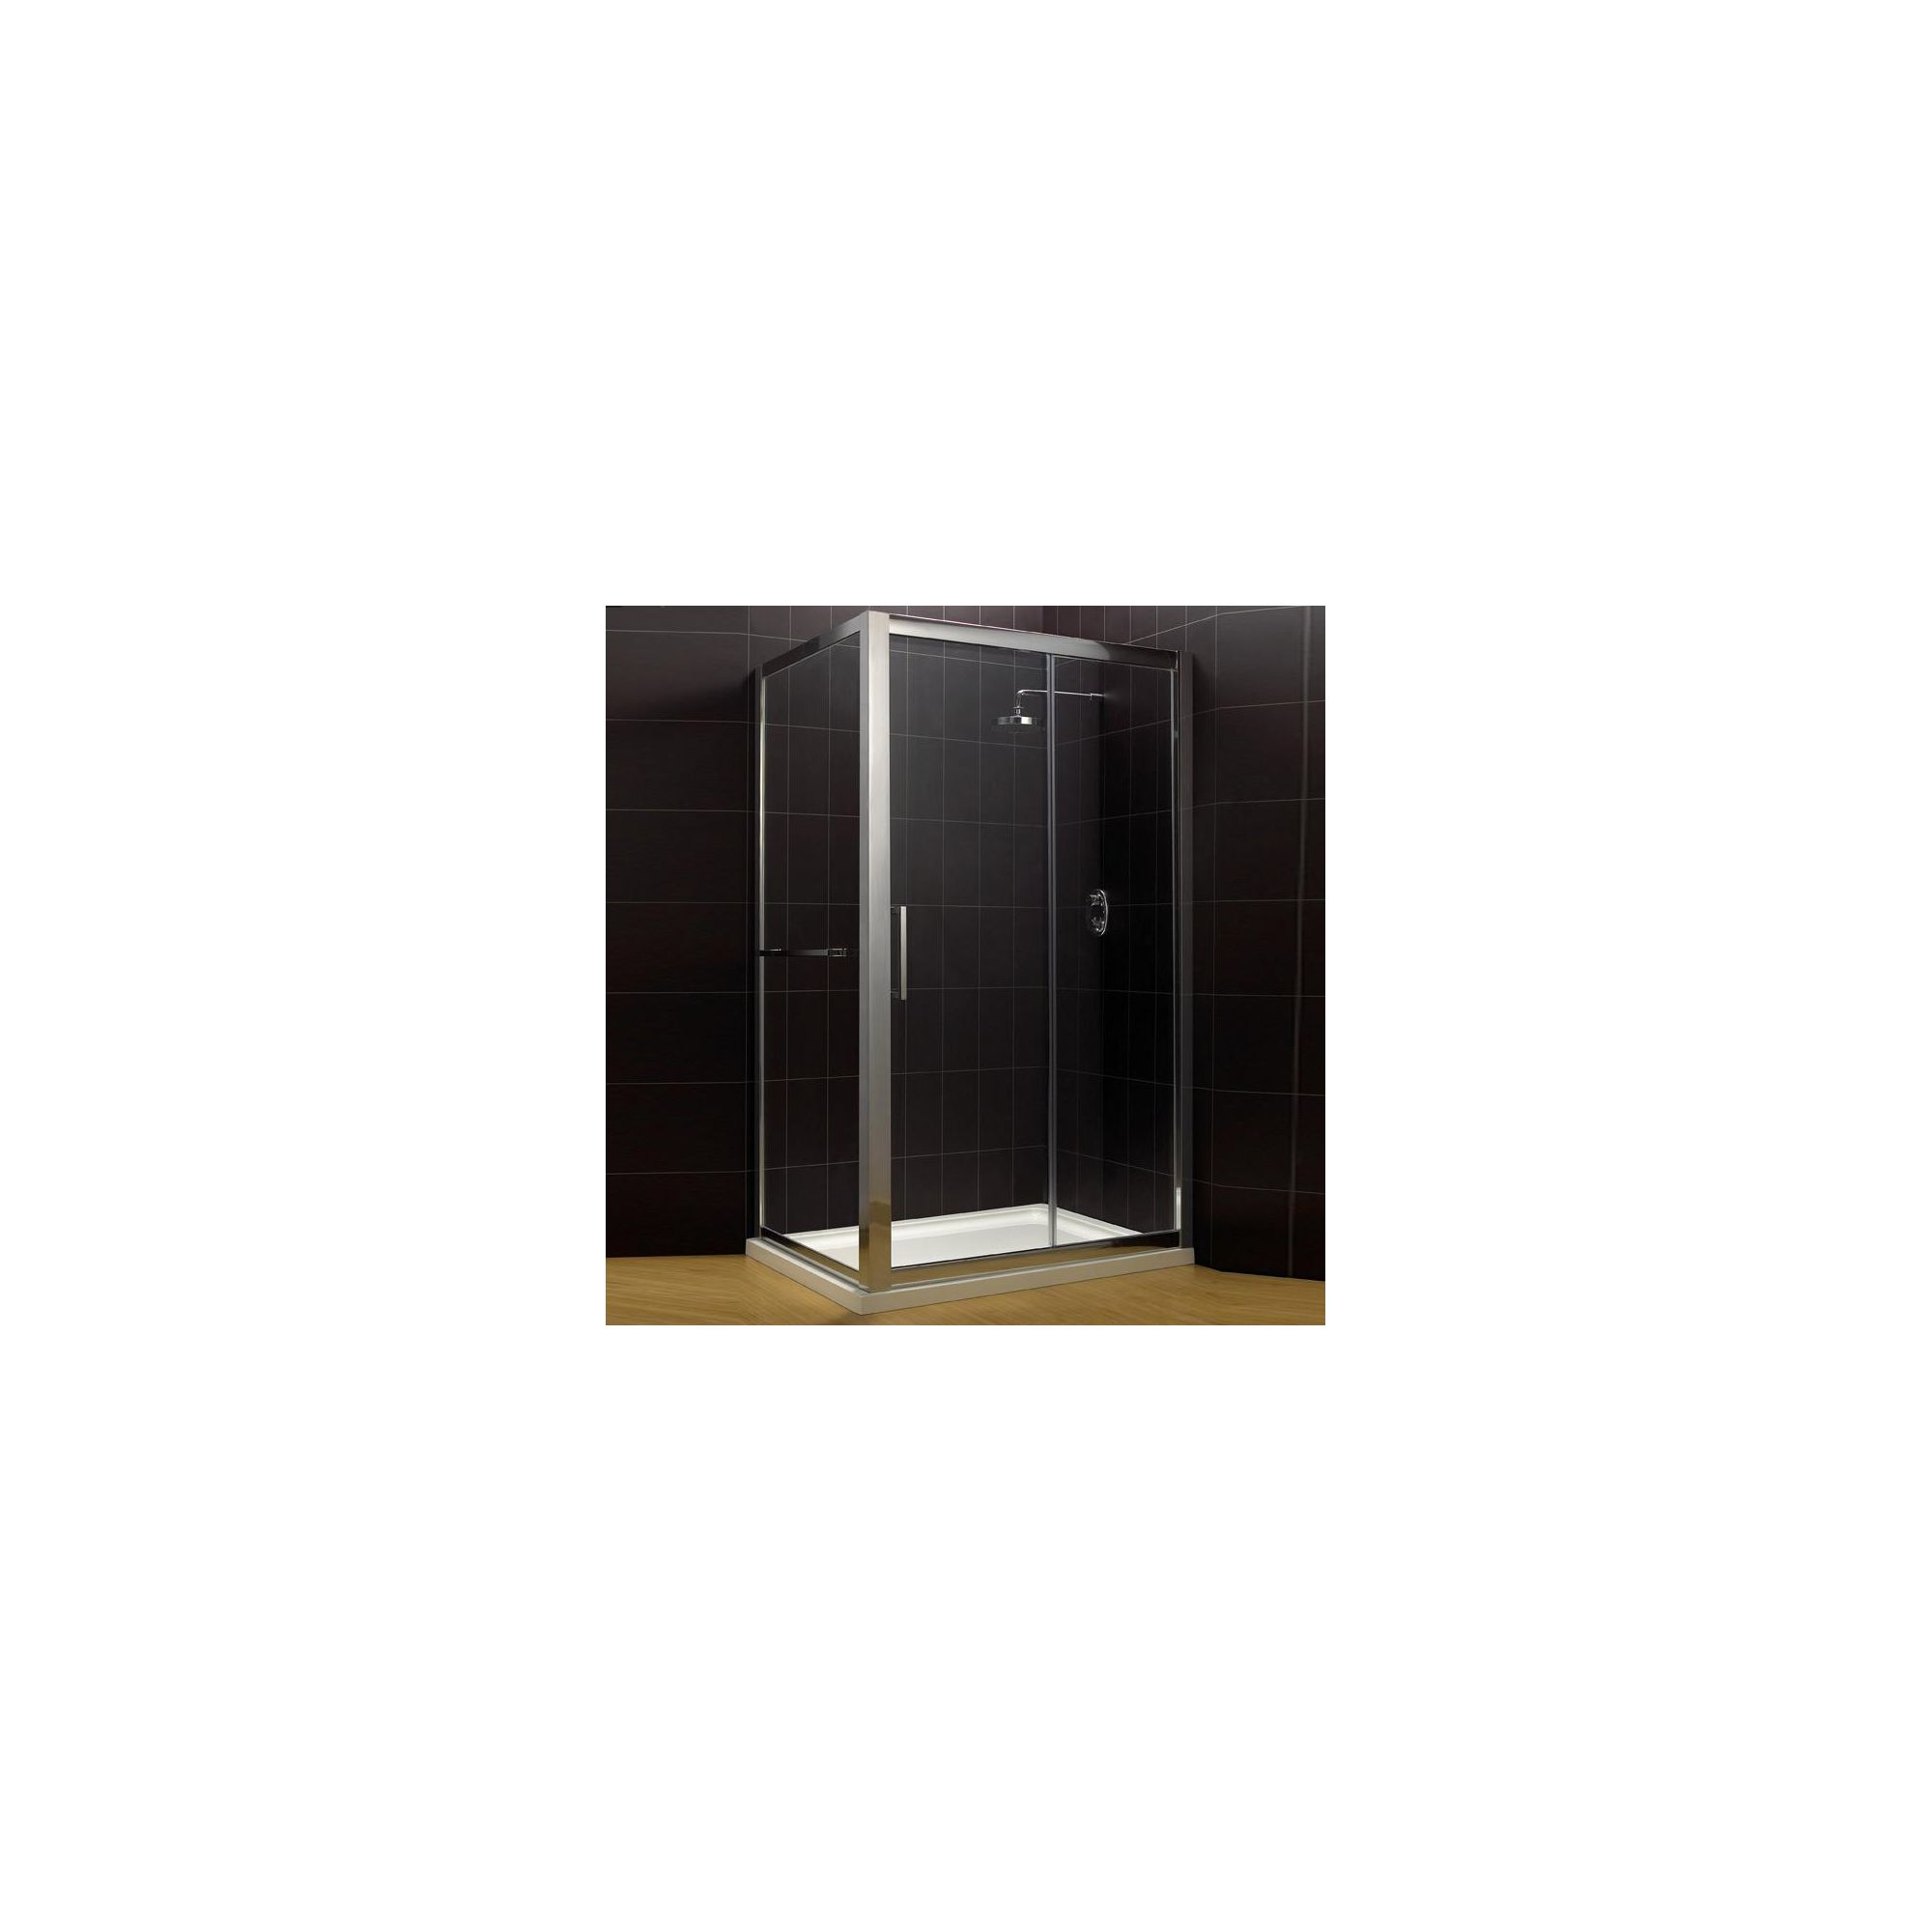 Duchy Supreme Silver Sliding Door Shower Enclosure with Towel Rail, 1000mm x 800mm, Standard Tray, 8mm Glass at Tesco Direct